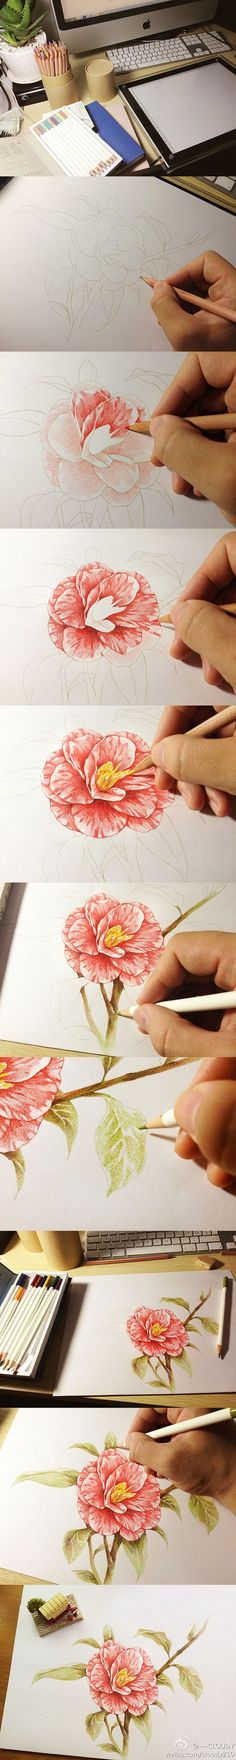 Steps to colour a flower